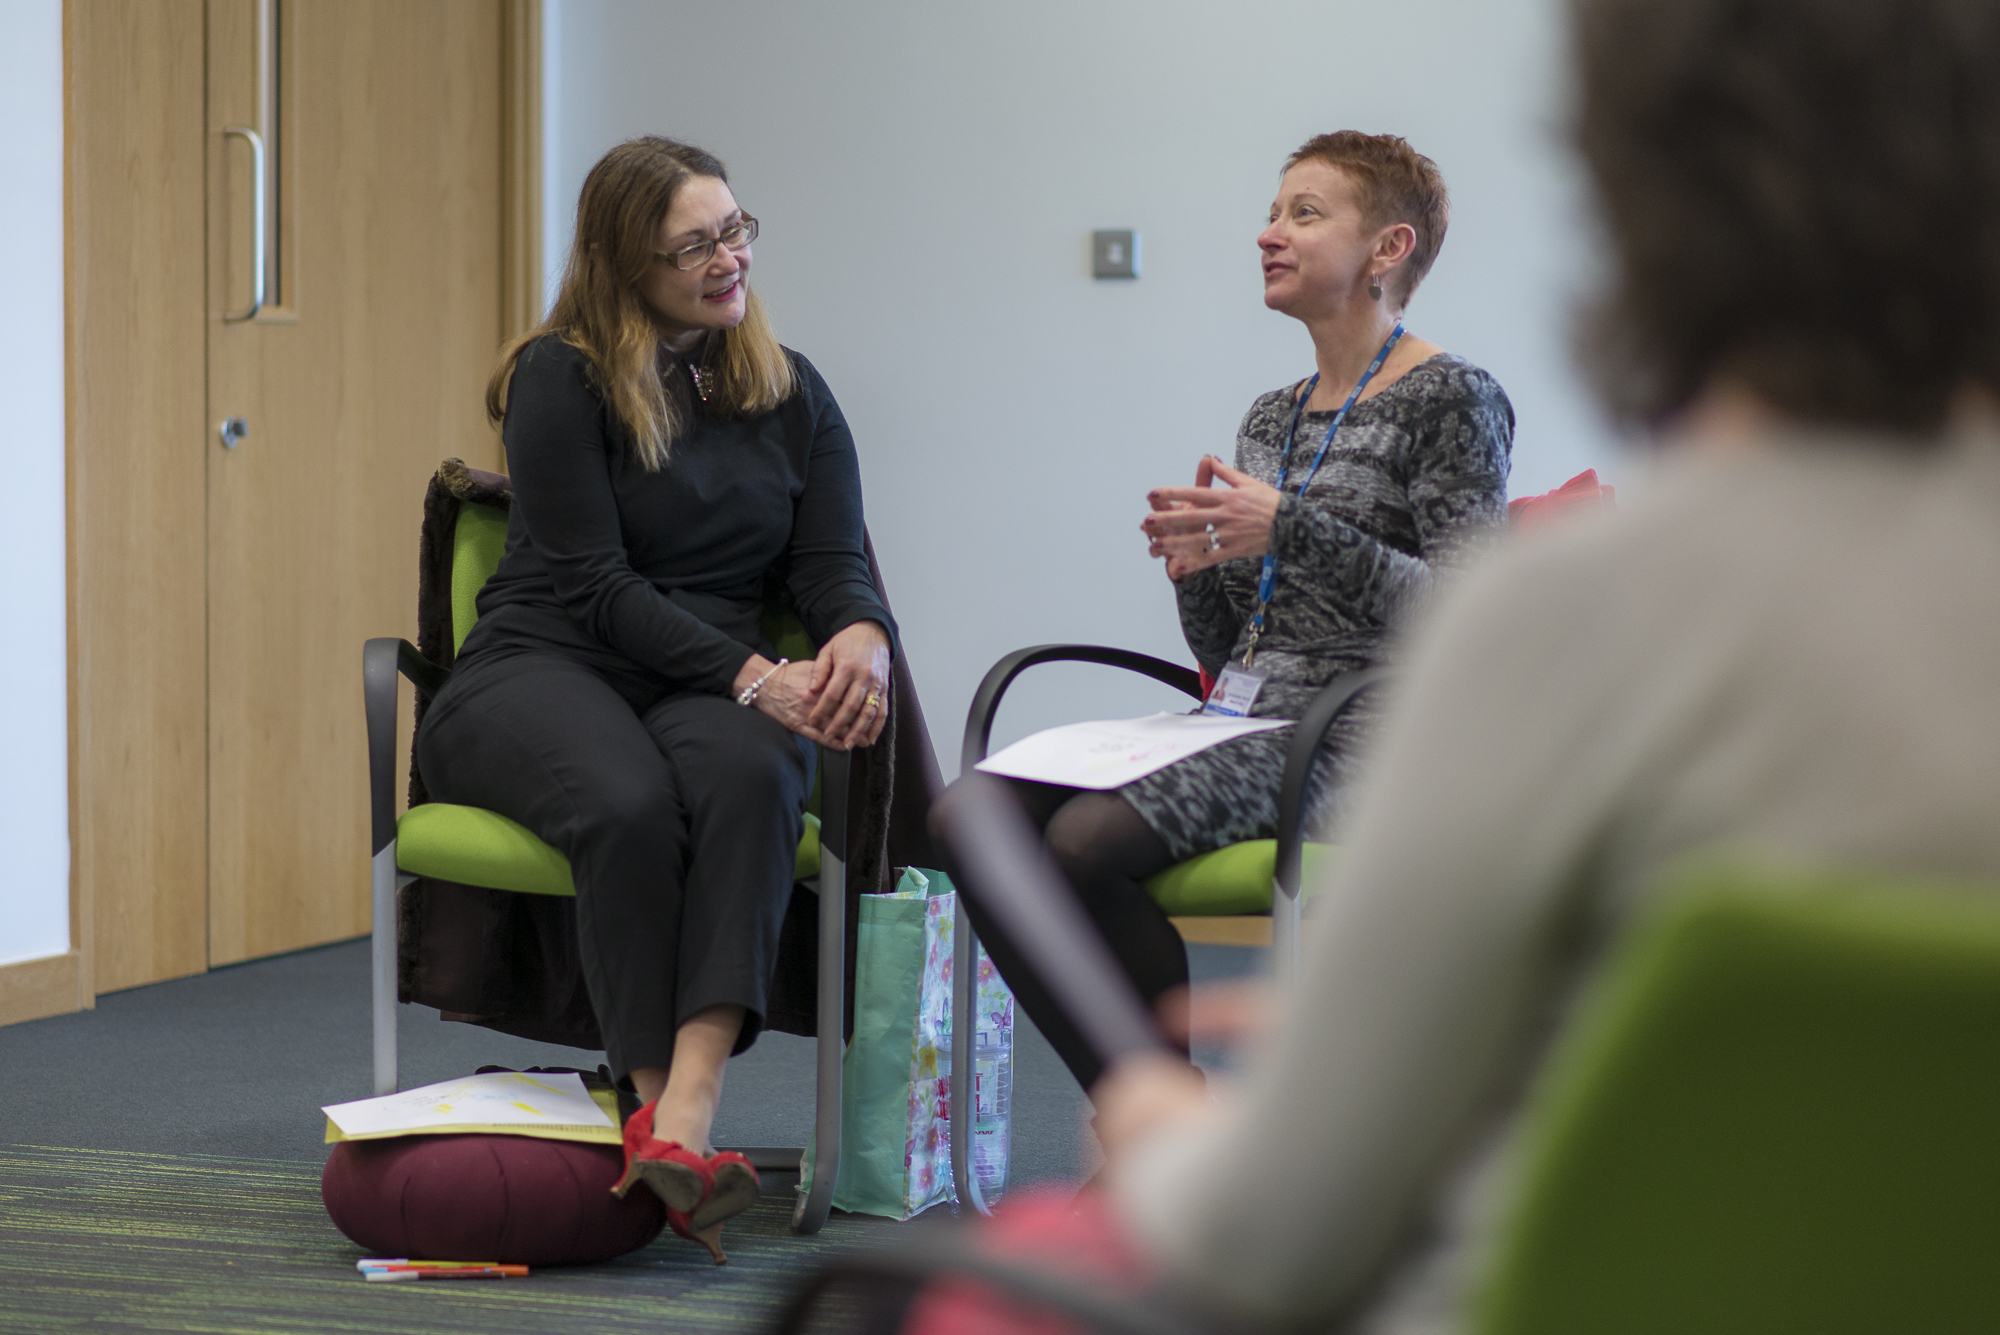 Two members of RJAH staff during one of the Mindfulness sessions discussing 'interacting with others'